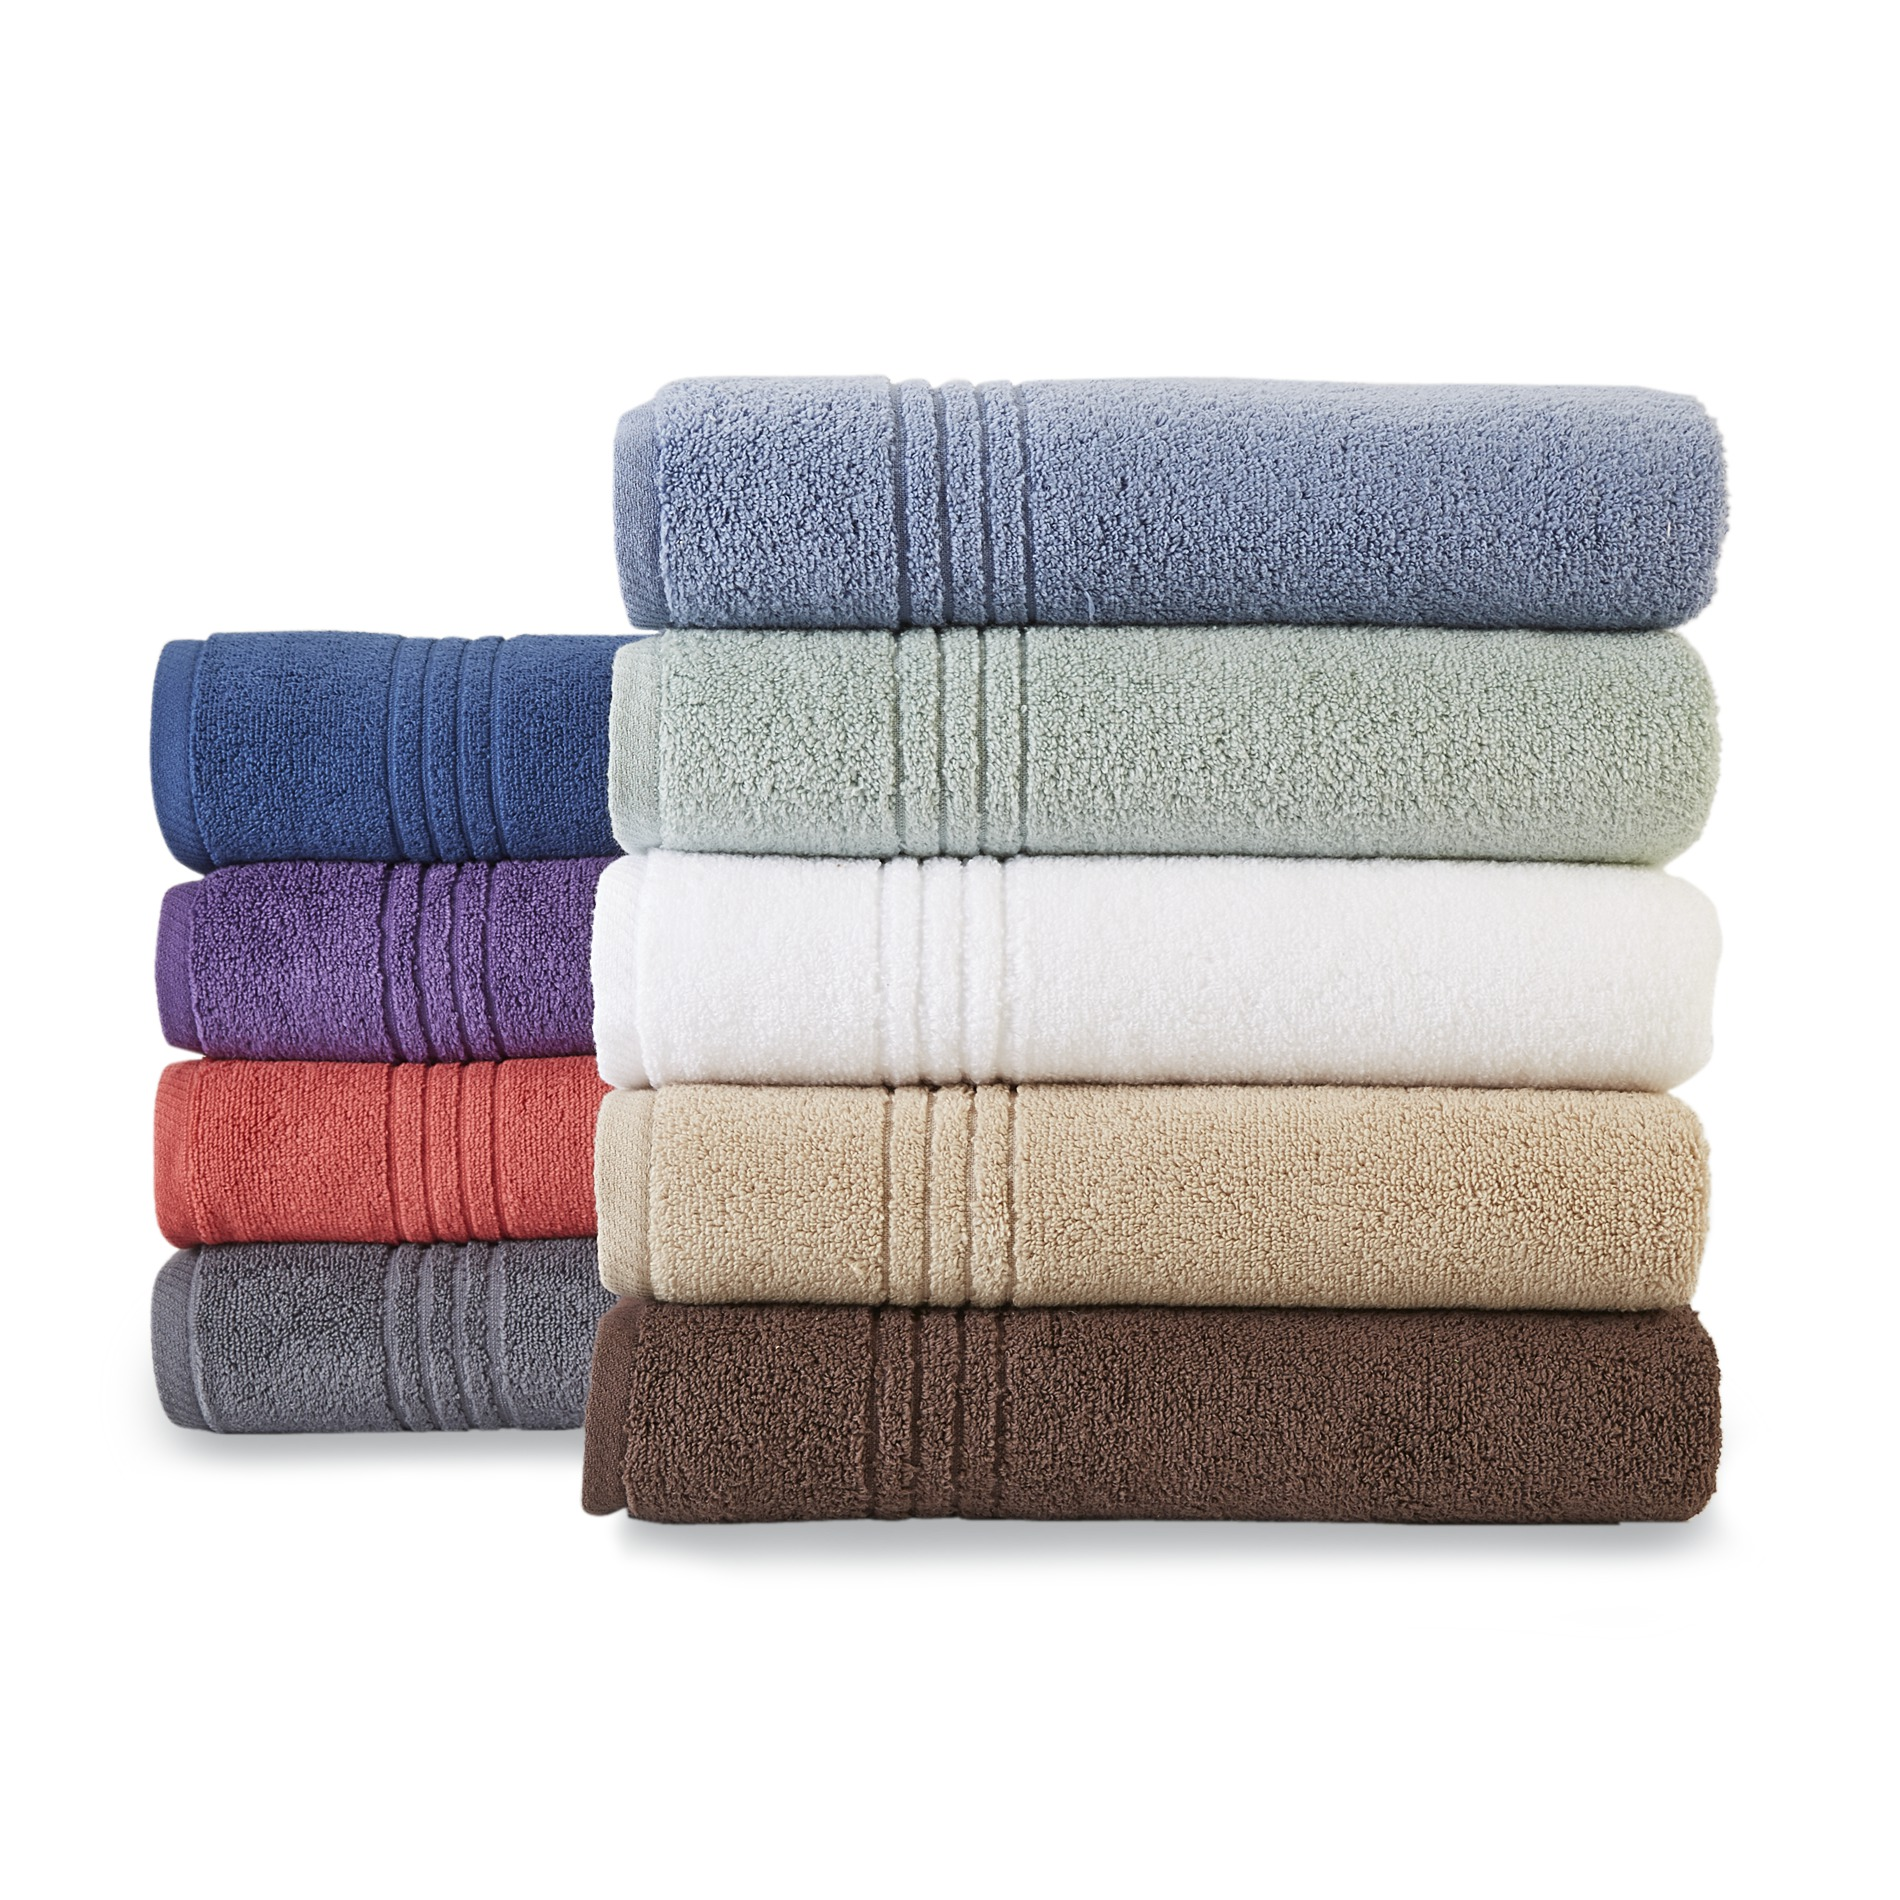 Colormate Soft And Plush Cotton Bath Towels Hand Washcloths